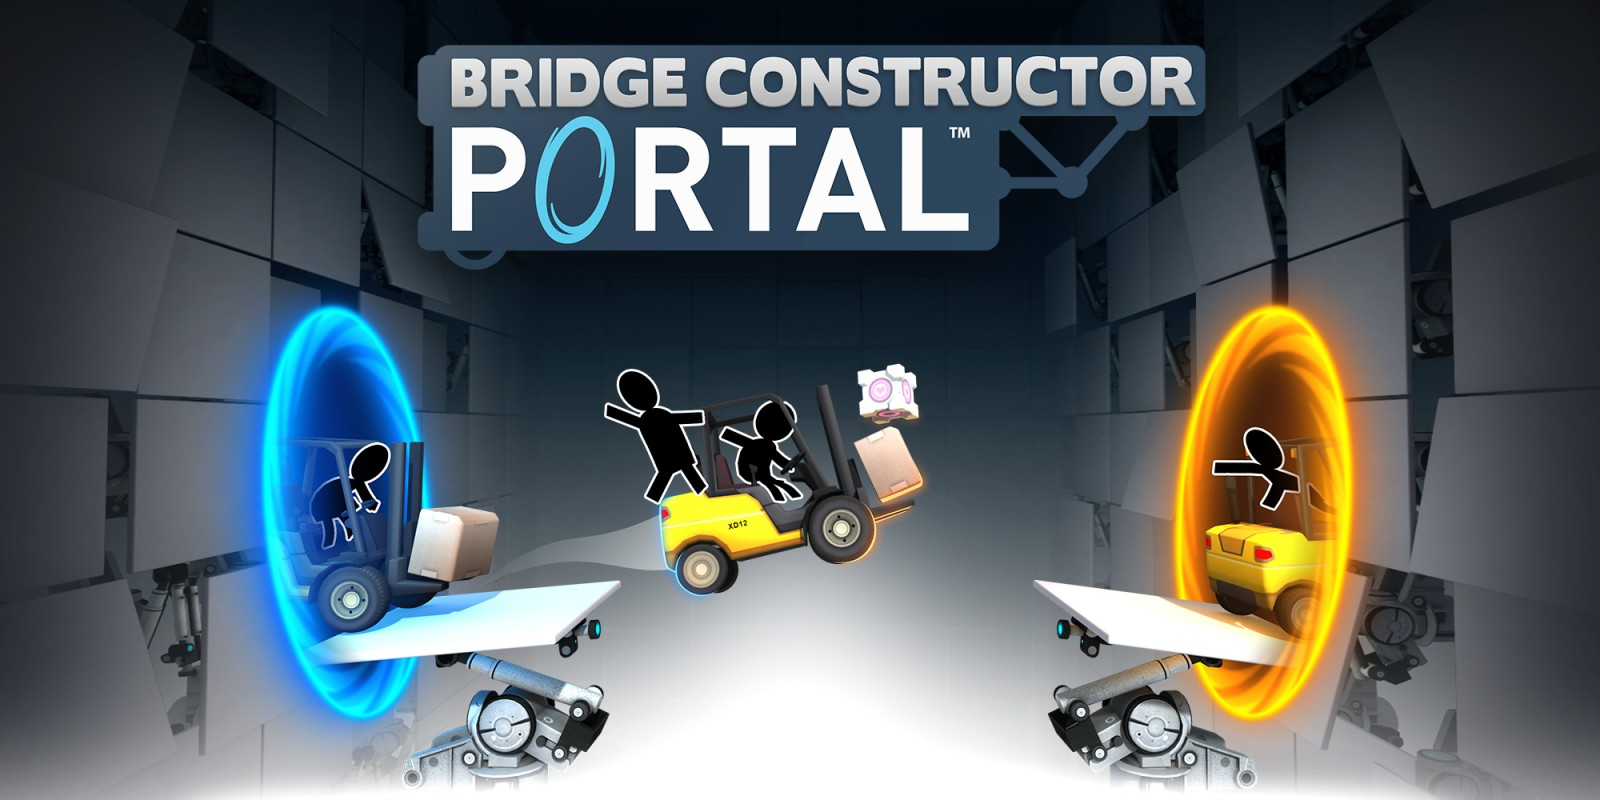 Bridge Constructor Portal | Nintendo Switch download software | Games | Nintendo